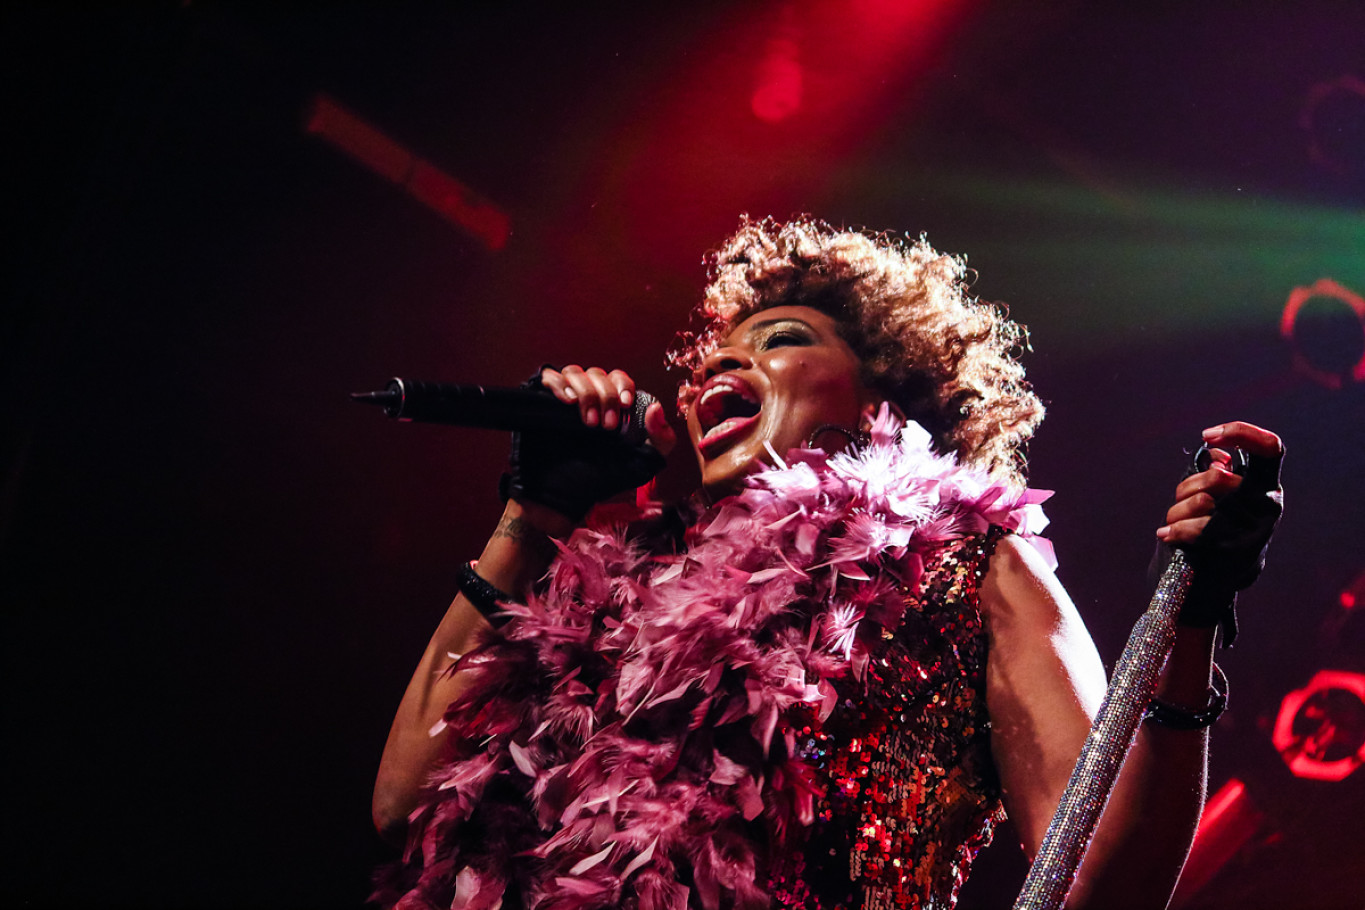 Macy Gray @ Niceto Club 2014